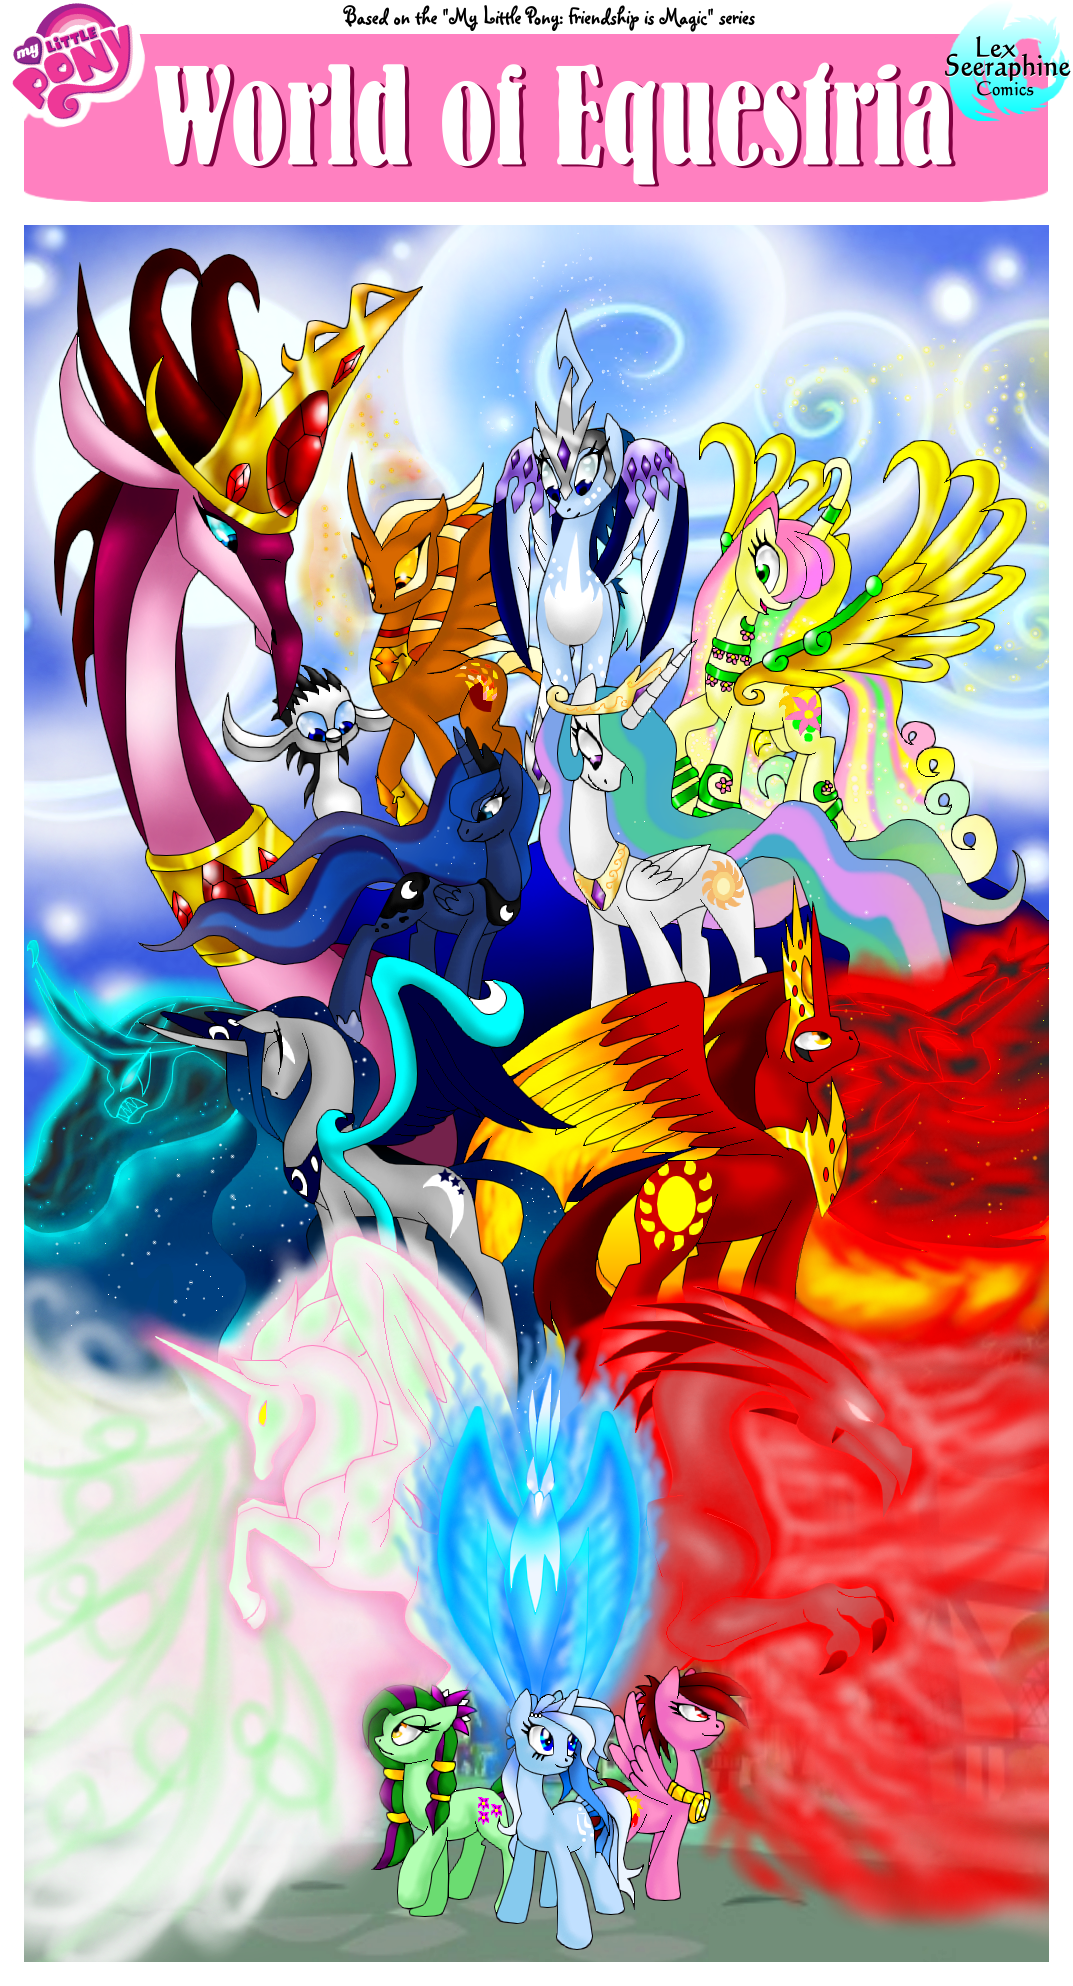 MLP- World of Equestria -COMIC COVER- by Seeraphine